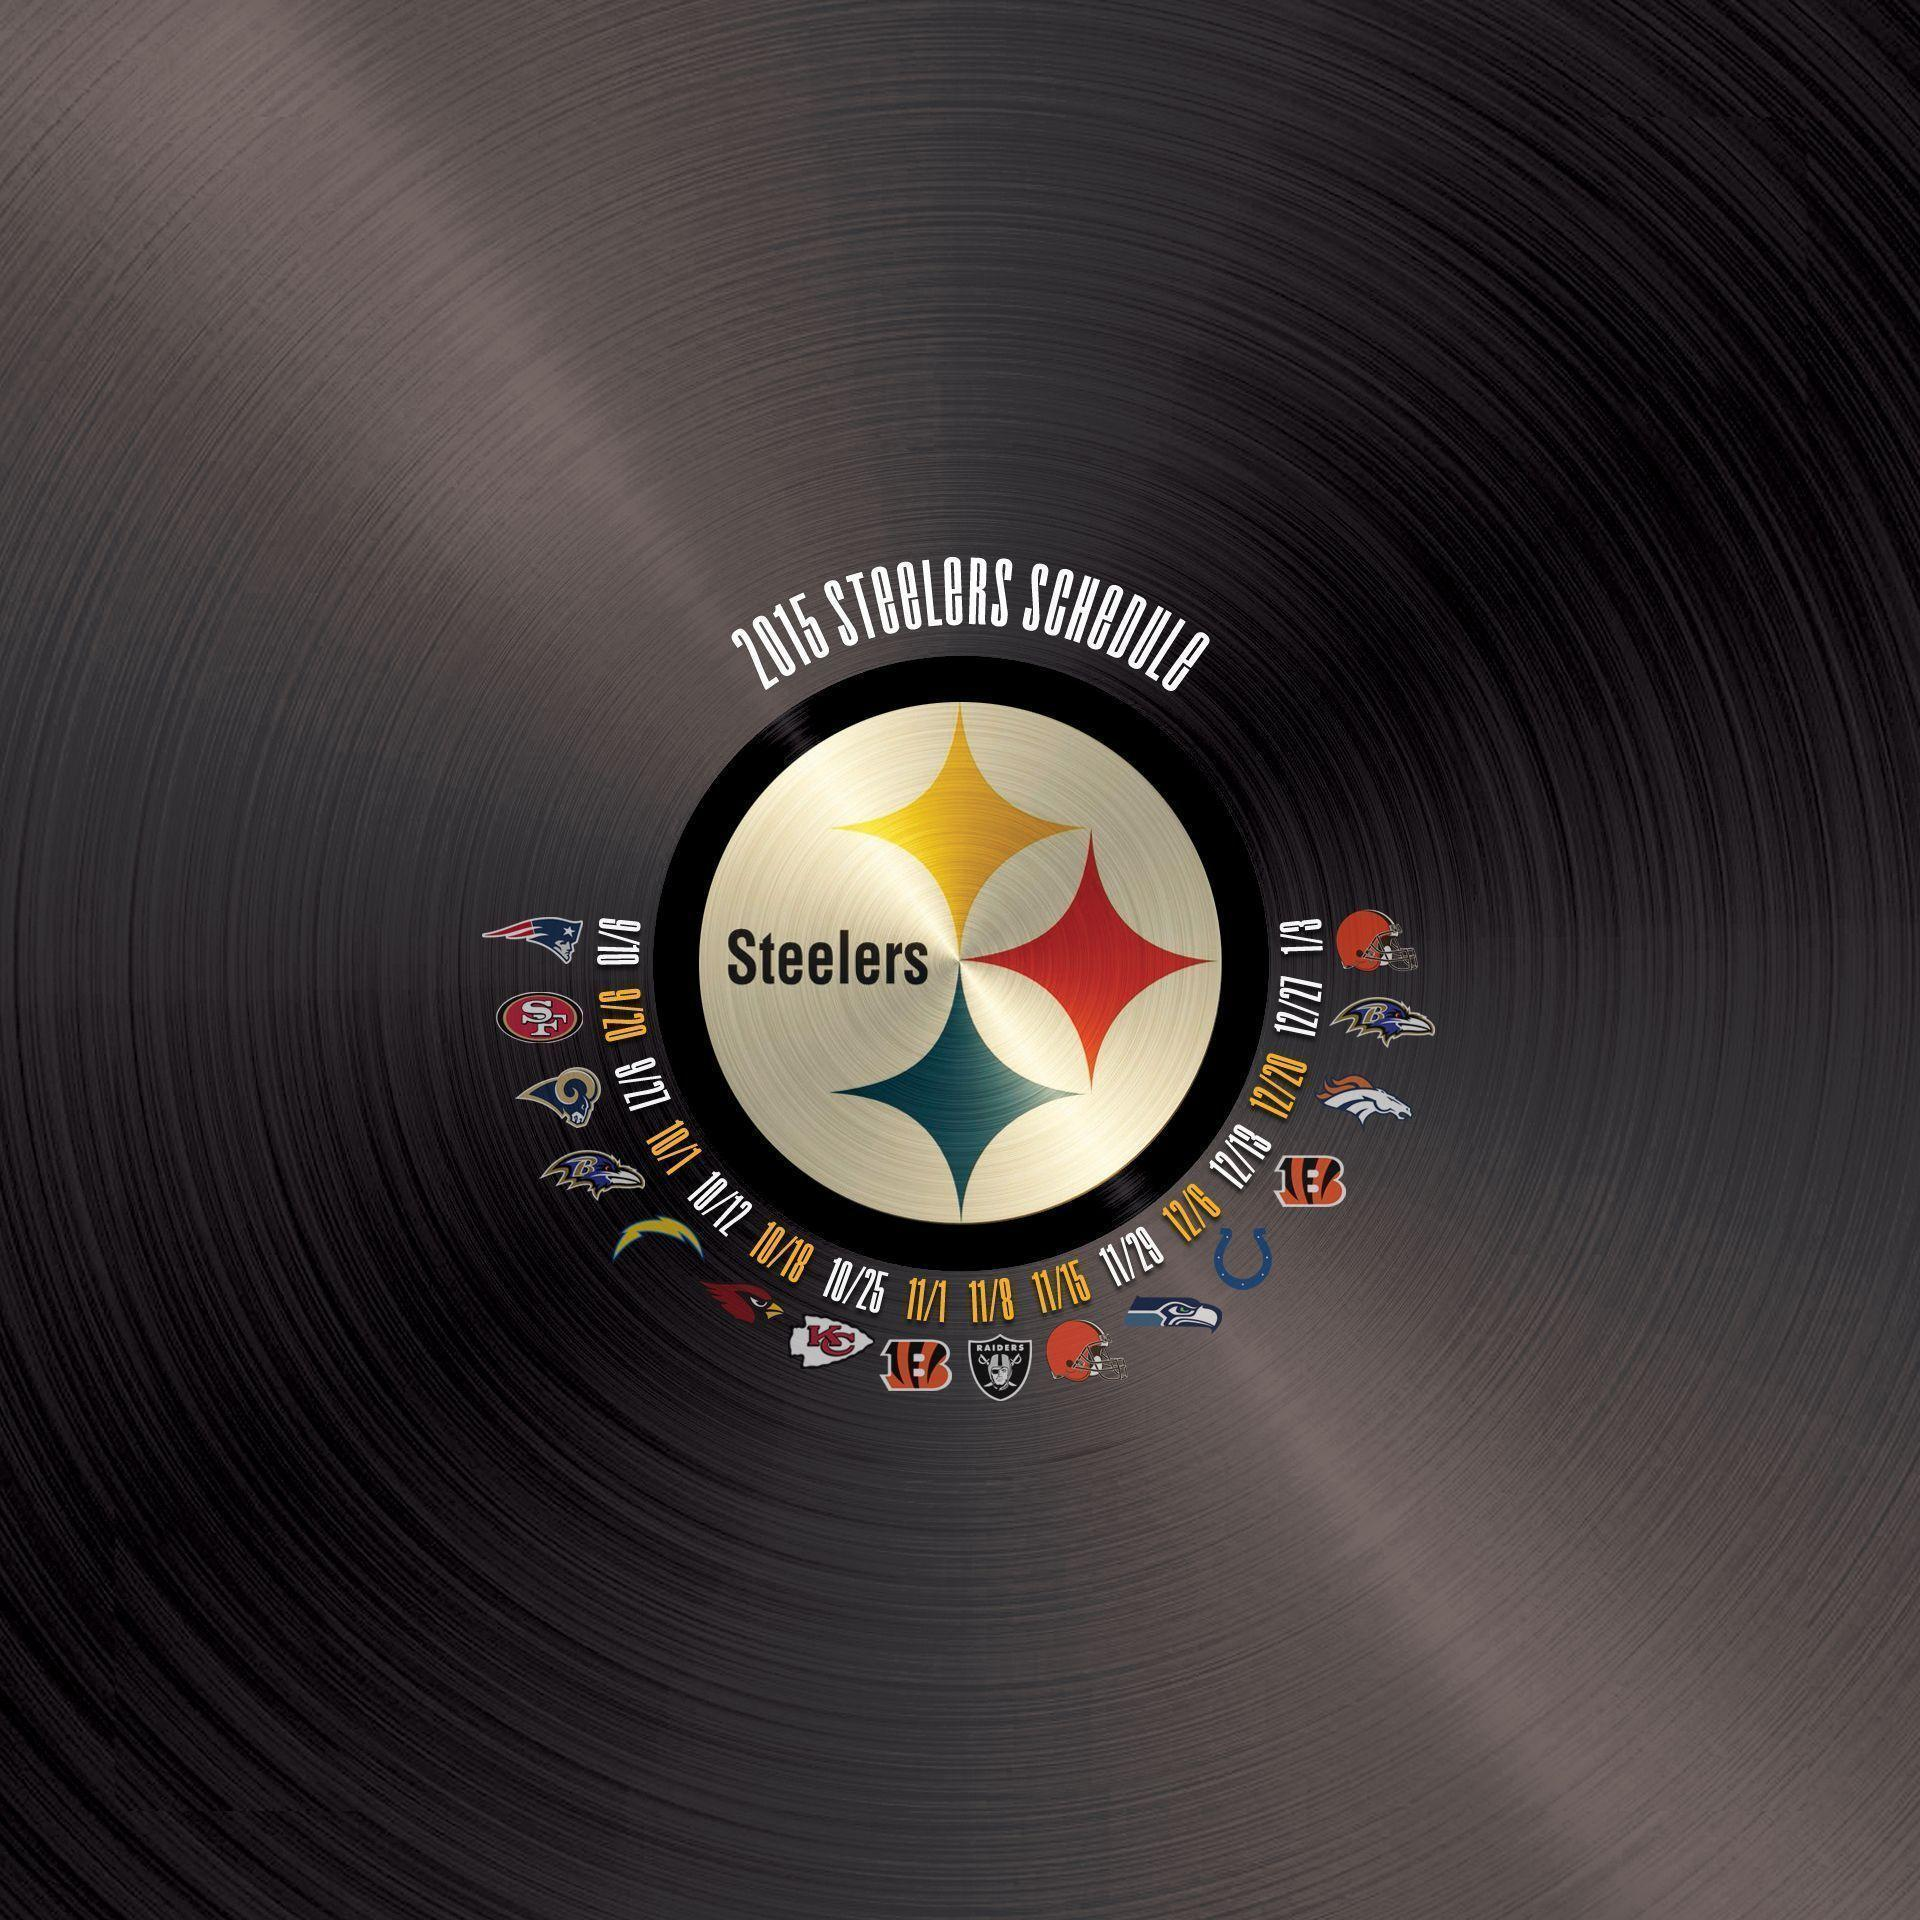 Hey Steelers fans, I made some wallpapers for every NFL team. Here